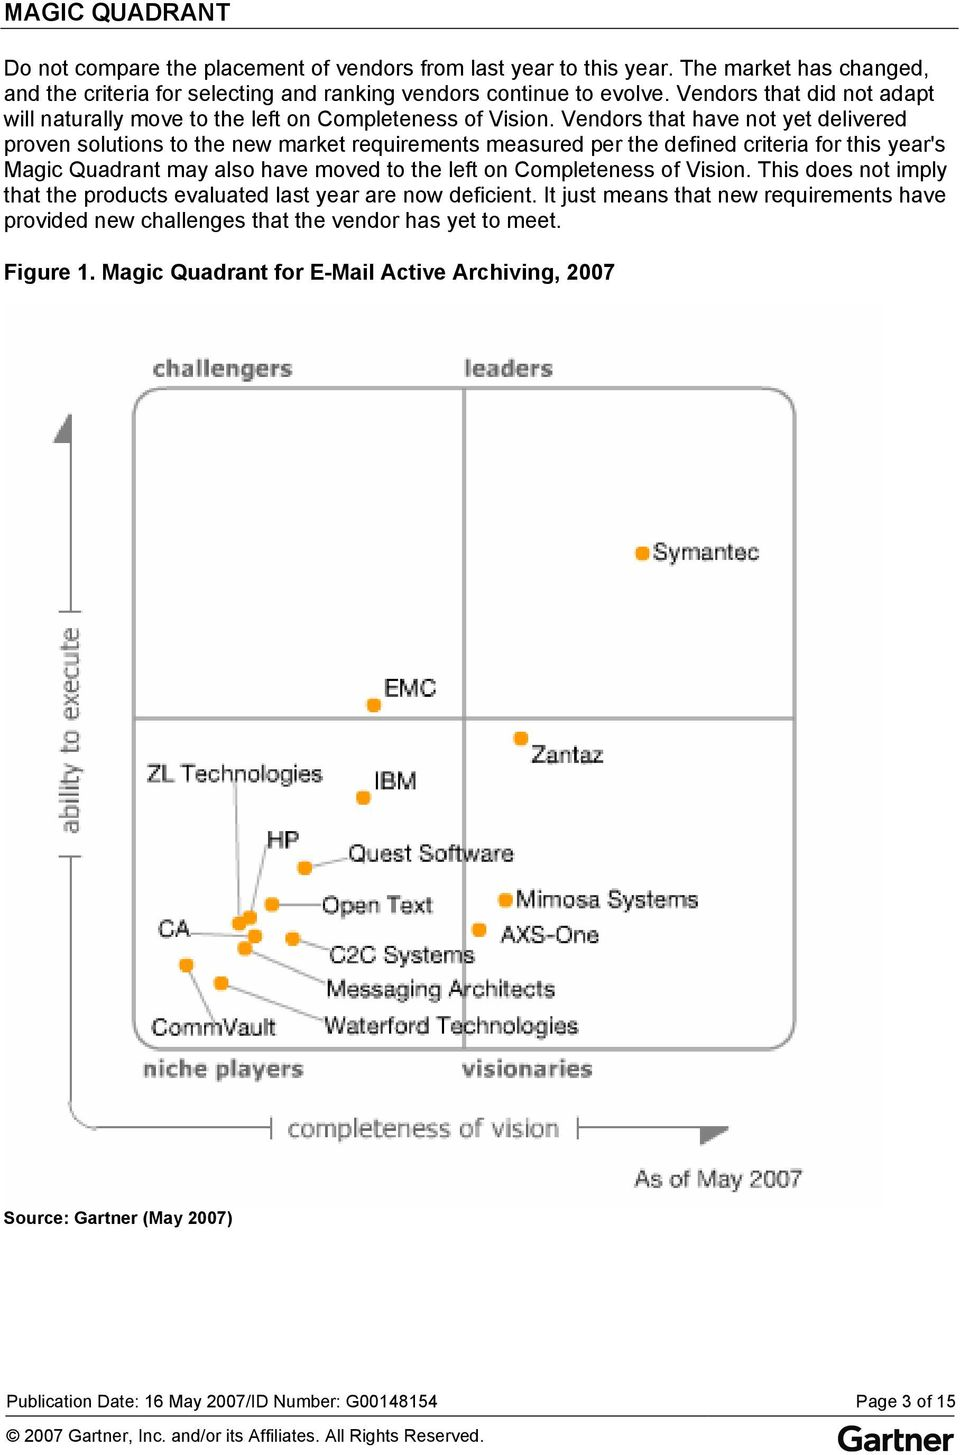 Vendors that have not yet delivered proven solutions to the new market requirements measured per the defined criteria for this year's Magic Quadrant may also have moved to the left on Completeness of